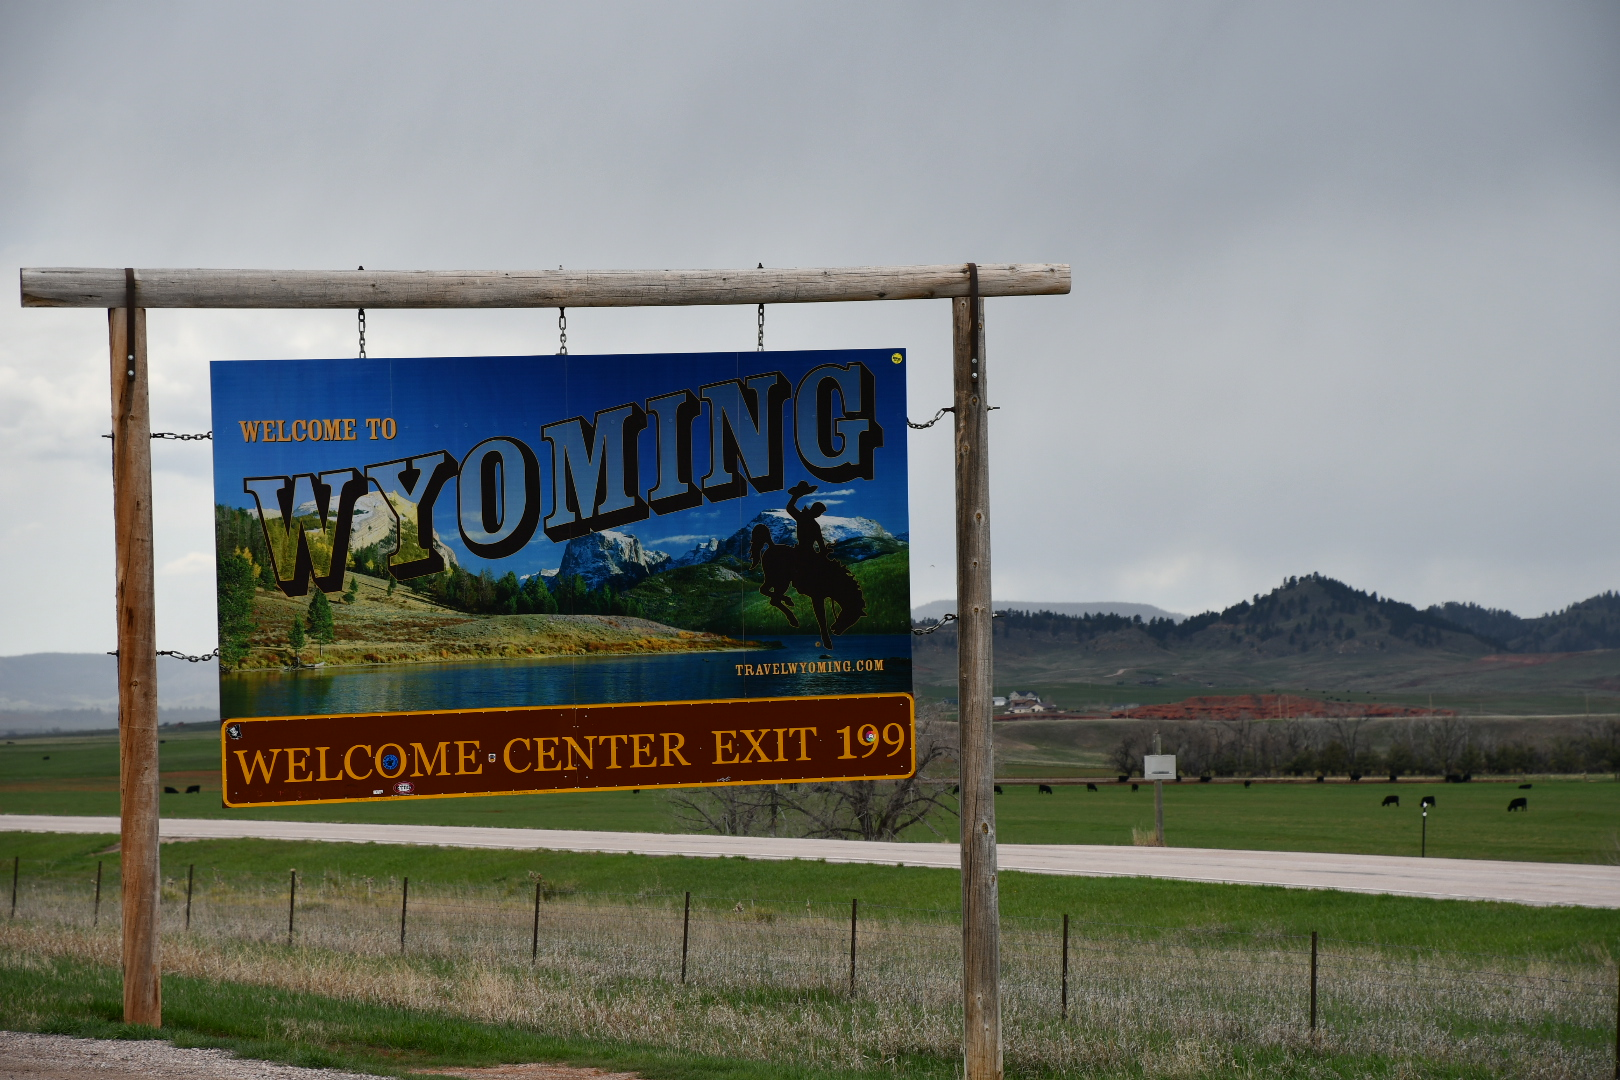 Billboard Welcome to Wyoming